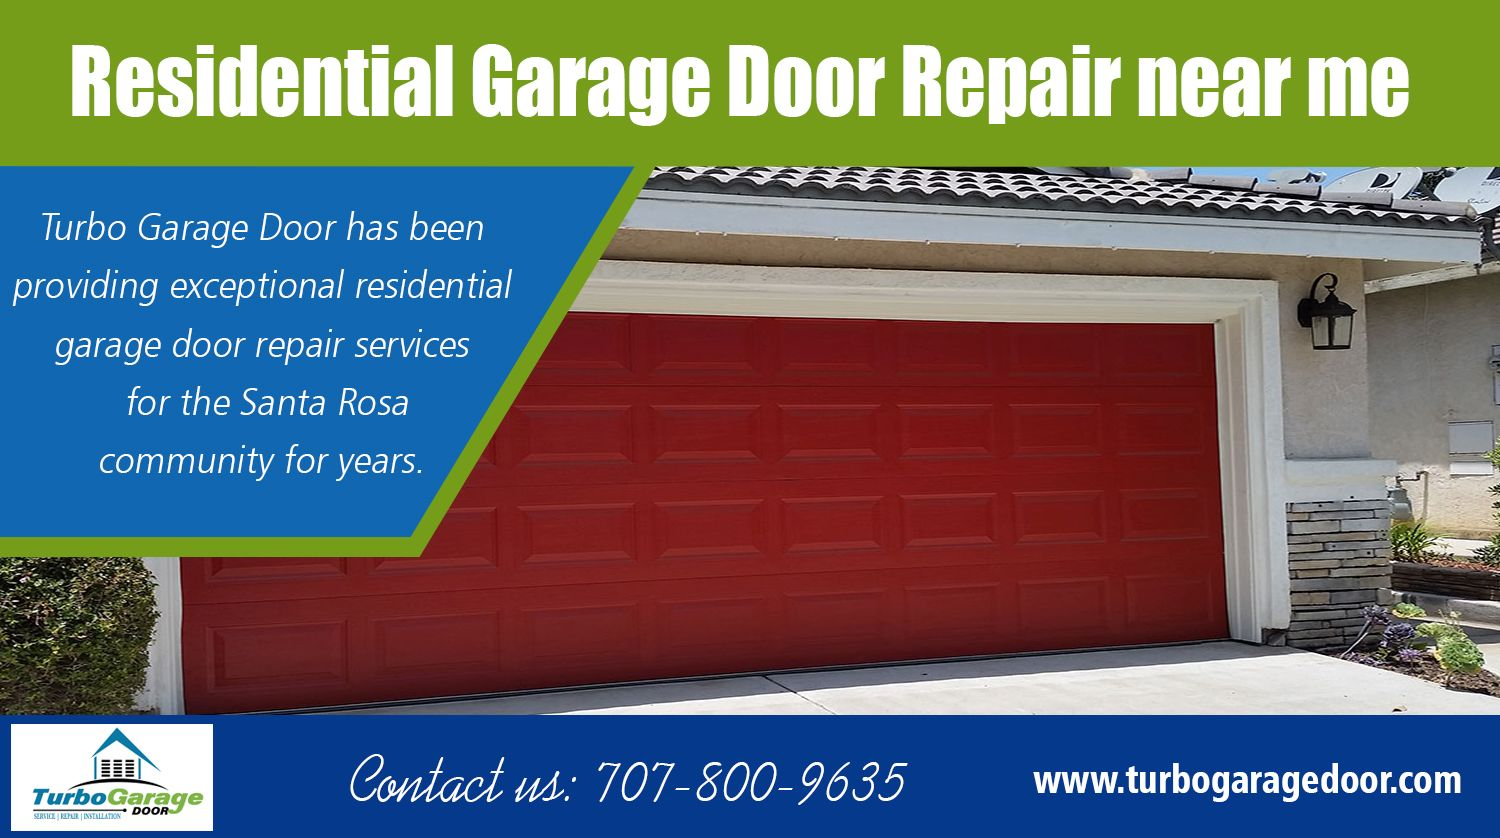 Residential garage door repair near me Pros offers quality